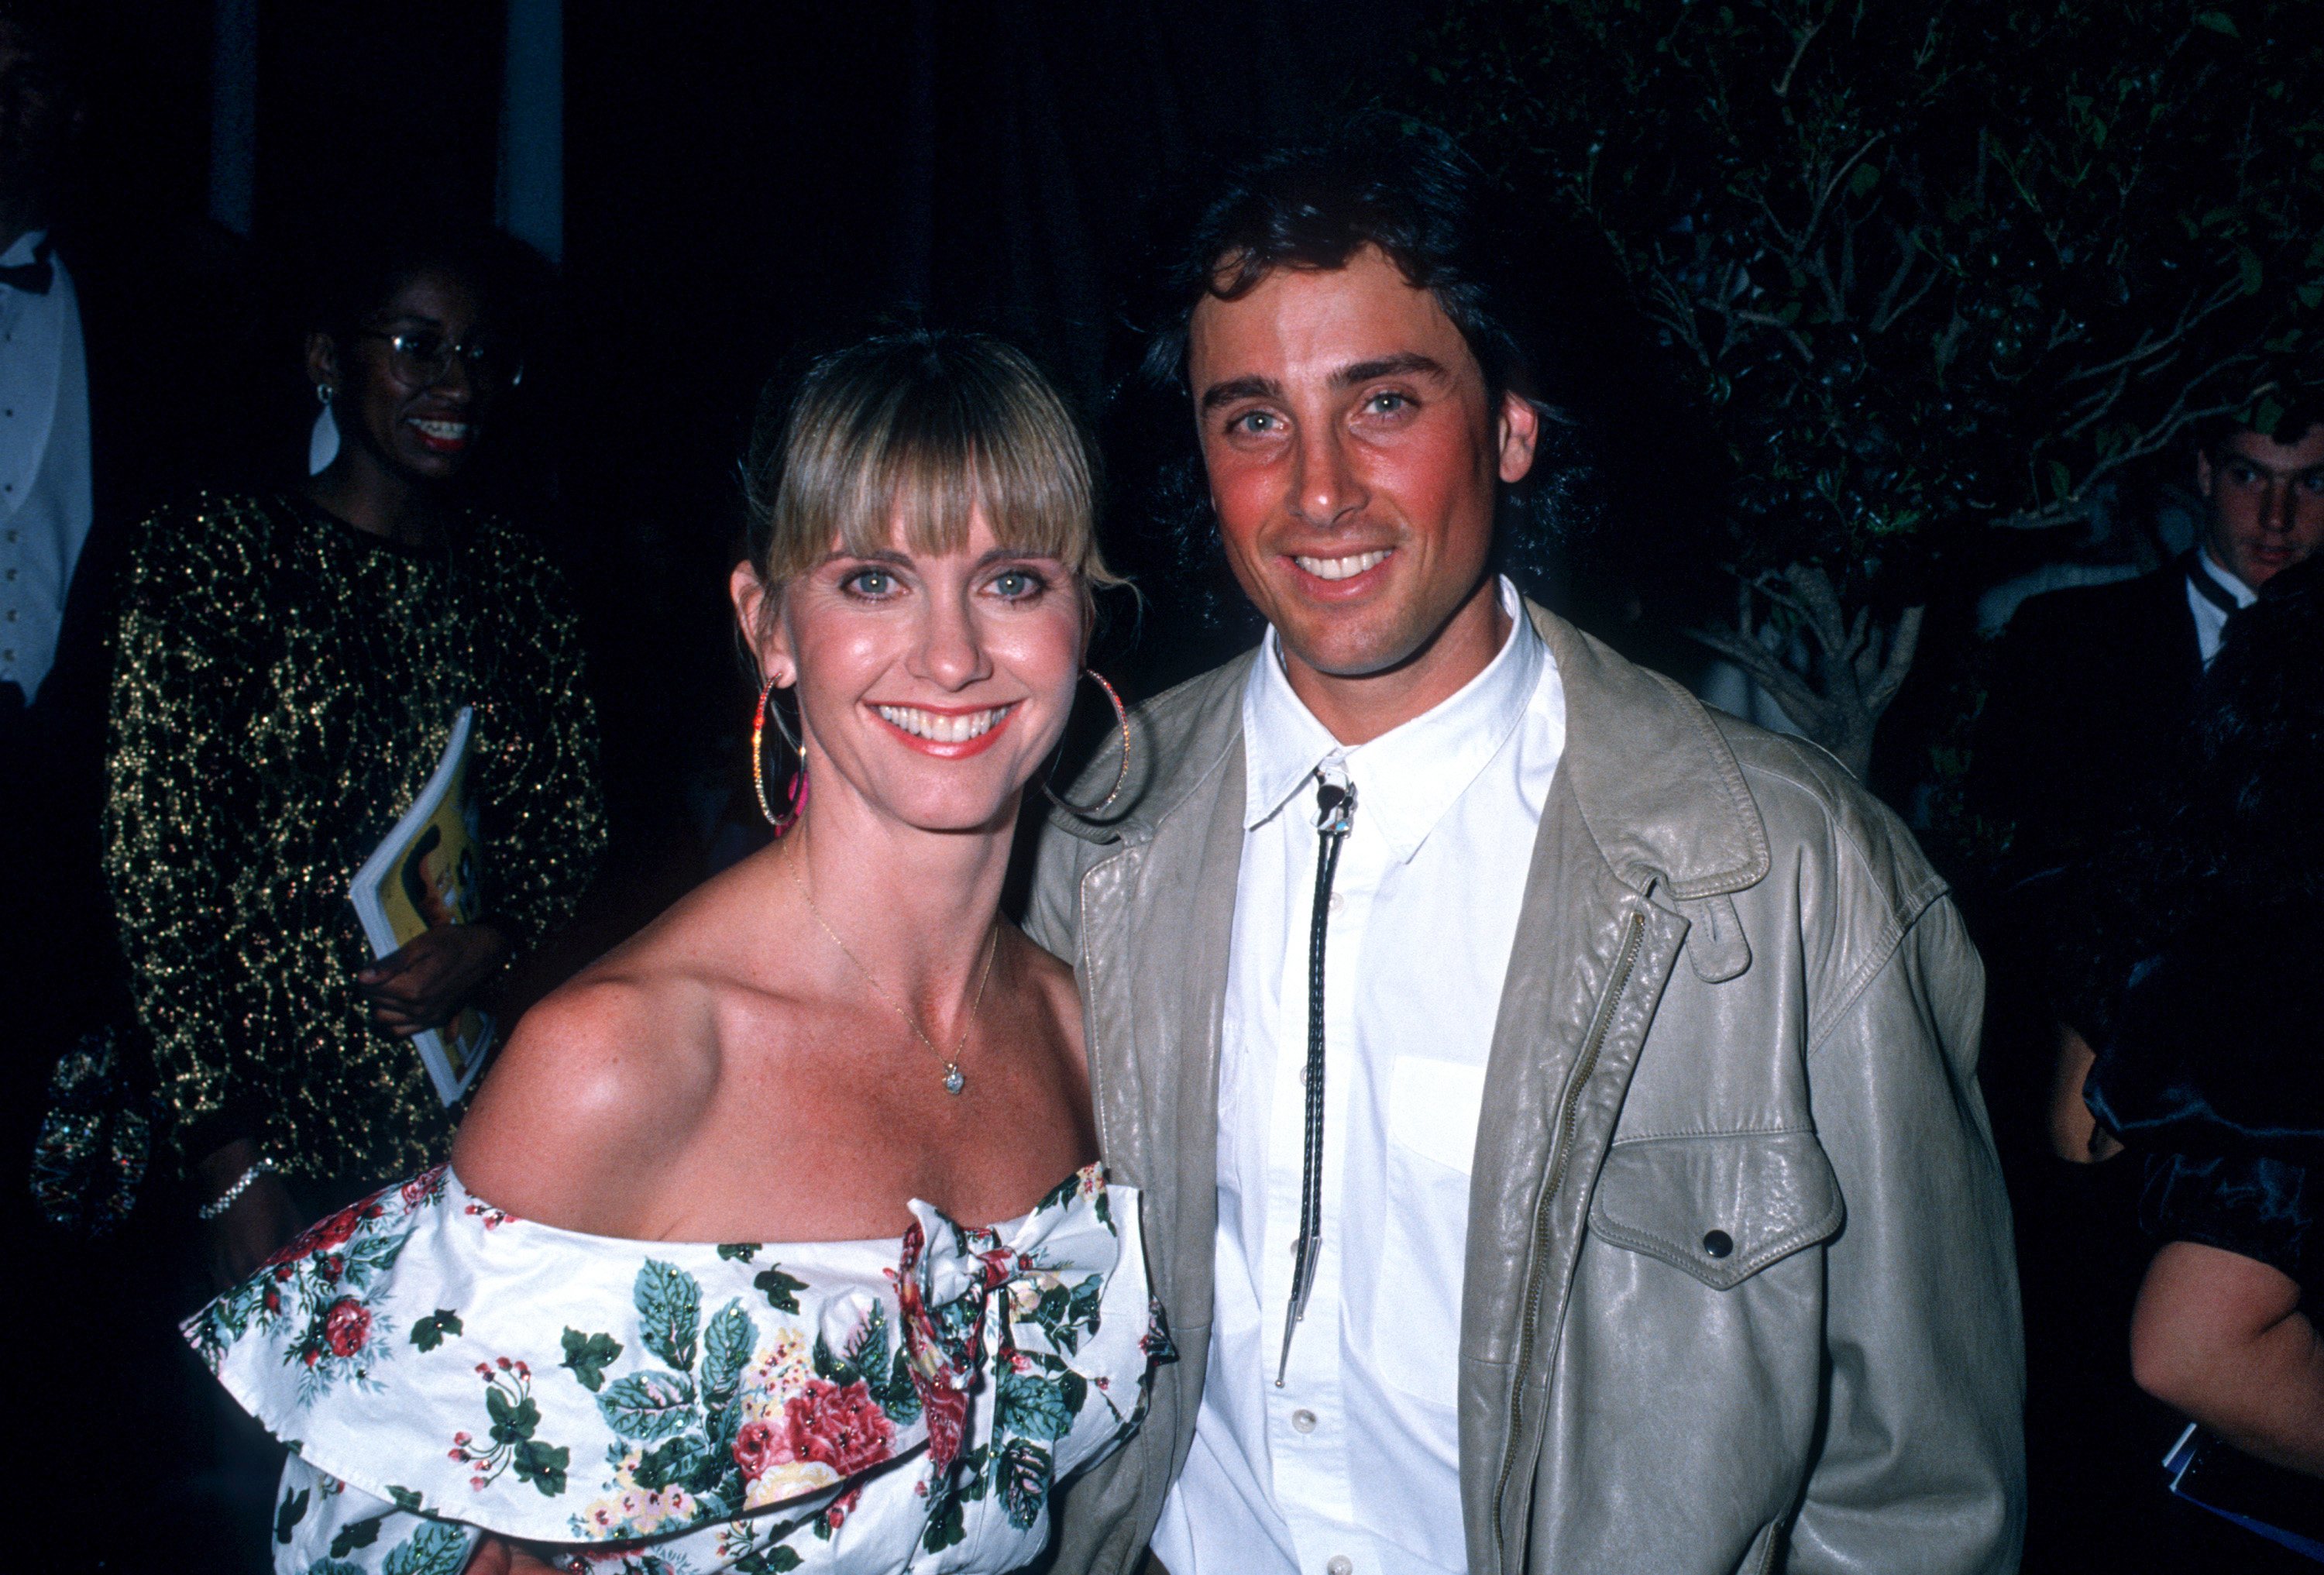 celebrity weddings year you were born olivia newton john matt lattanzi